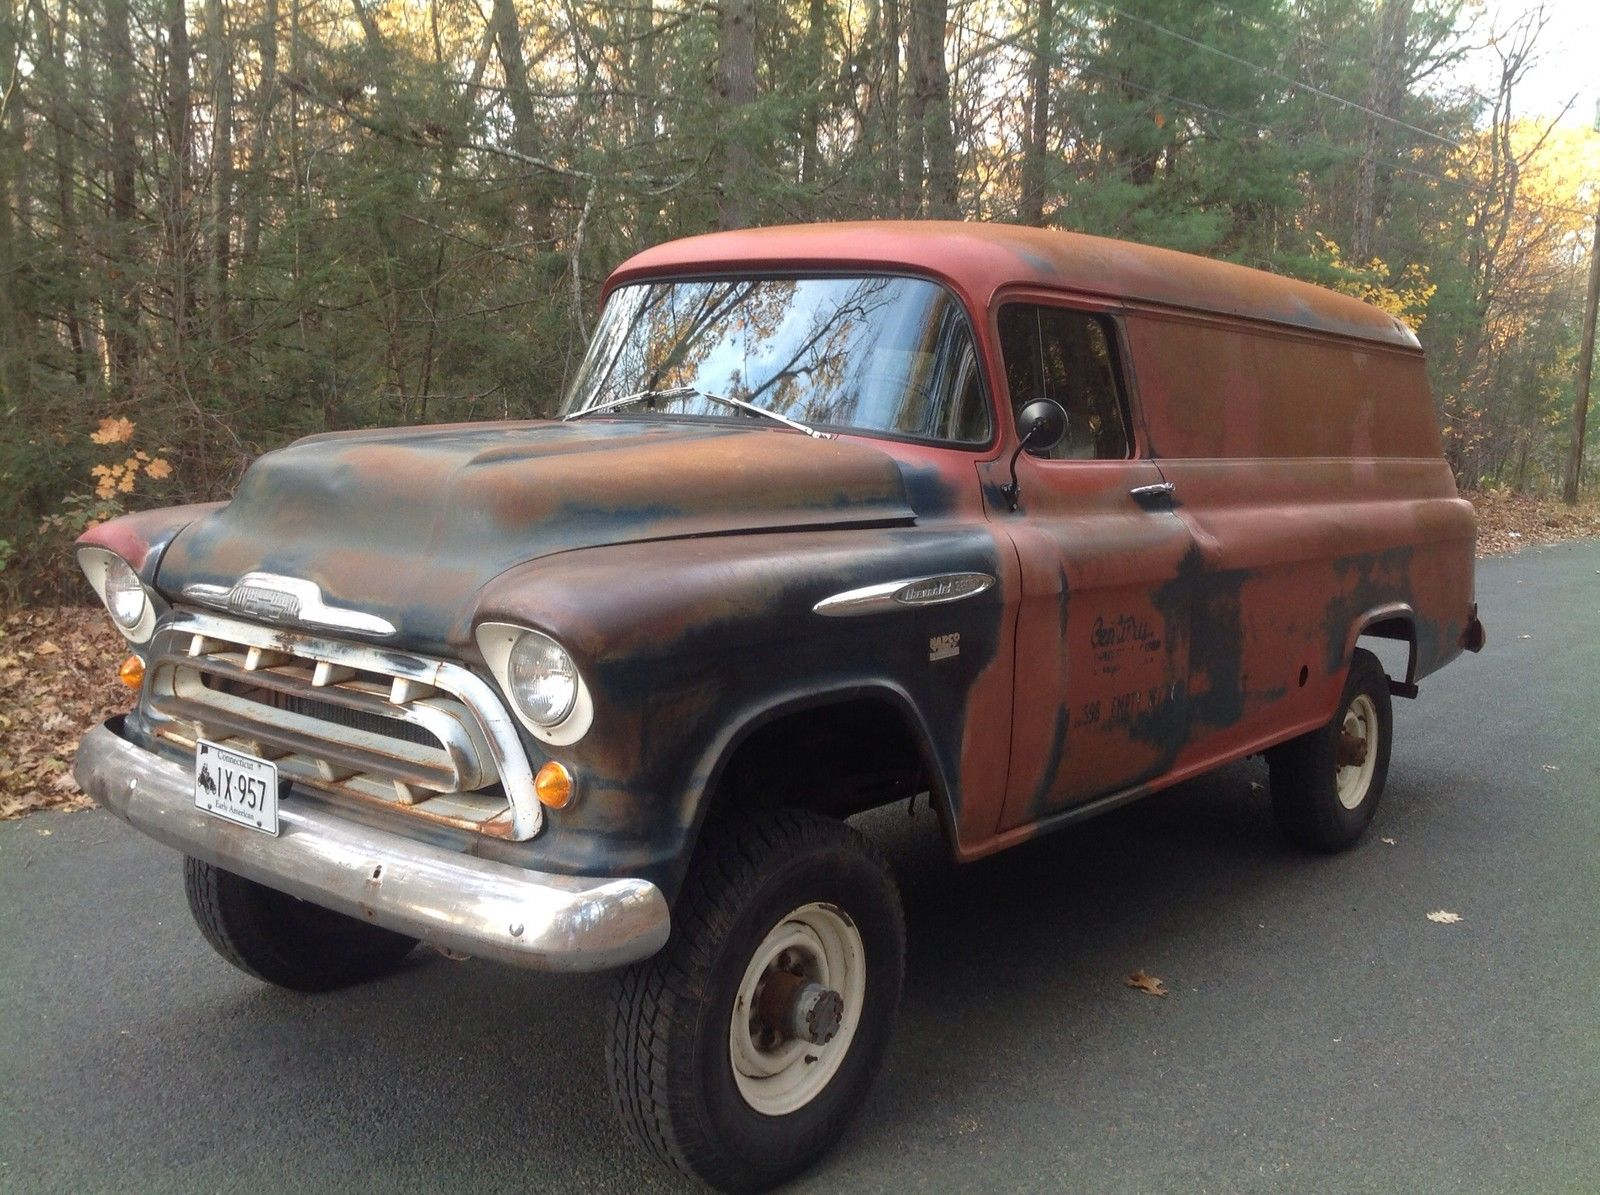 19601966 Chevy amp GMC Truck Parts